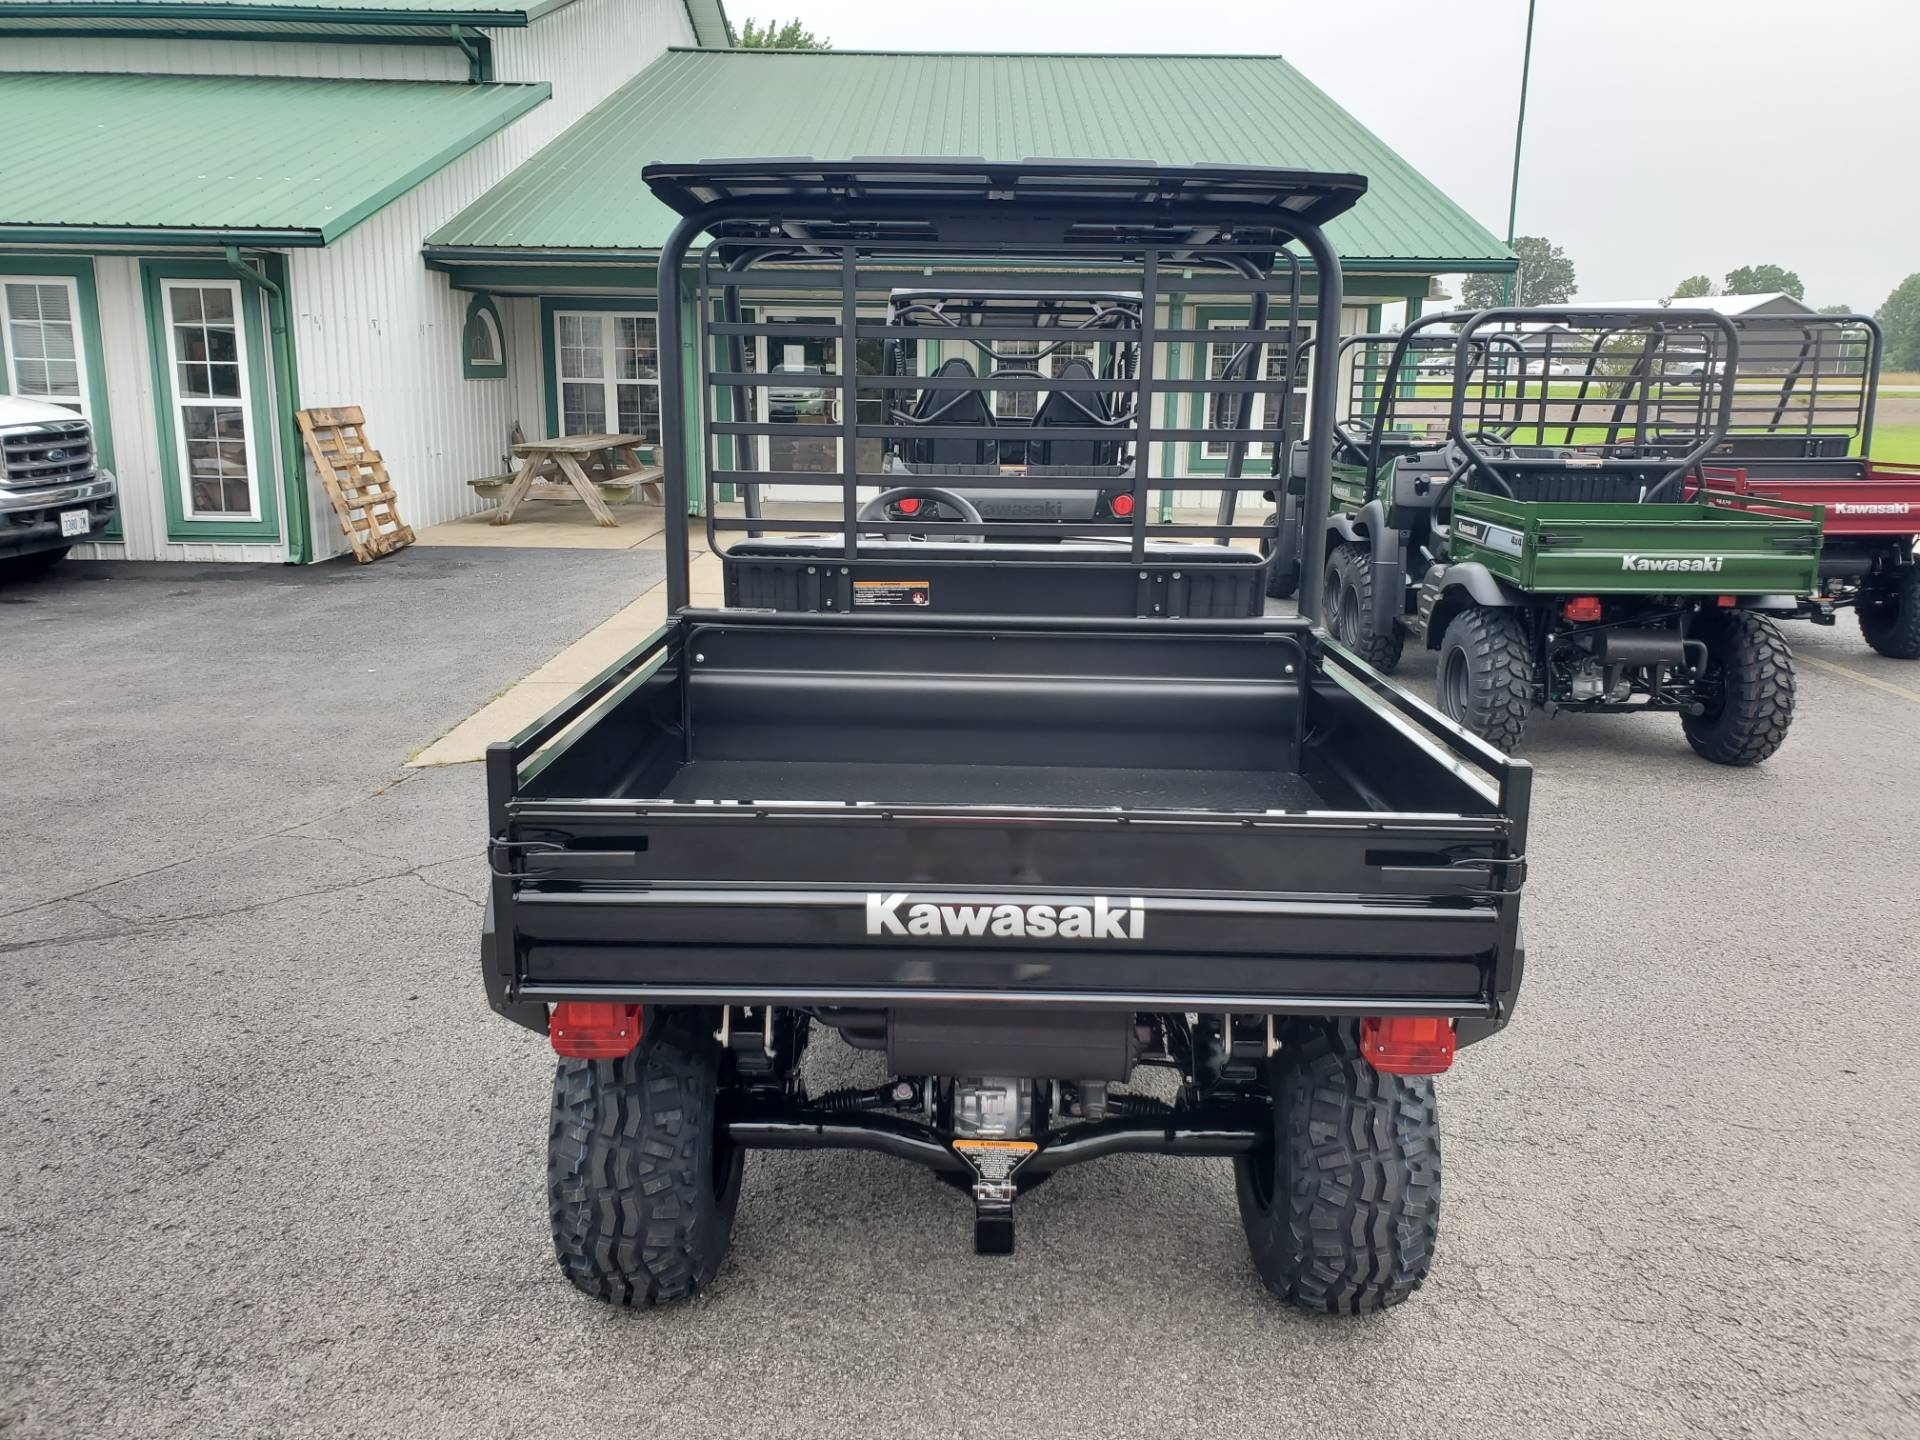 2021 Kawasaki Mule 4010 4x4 FE in Herrin, Illinois - Photo 6